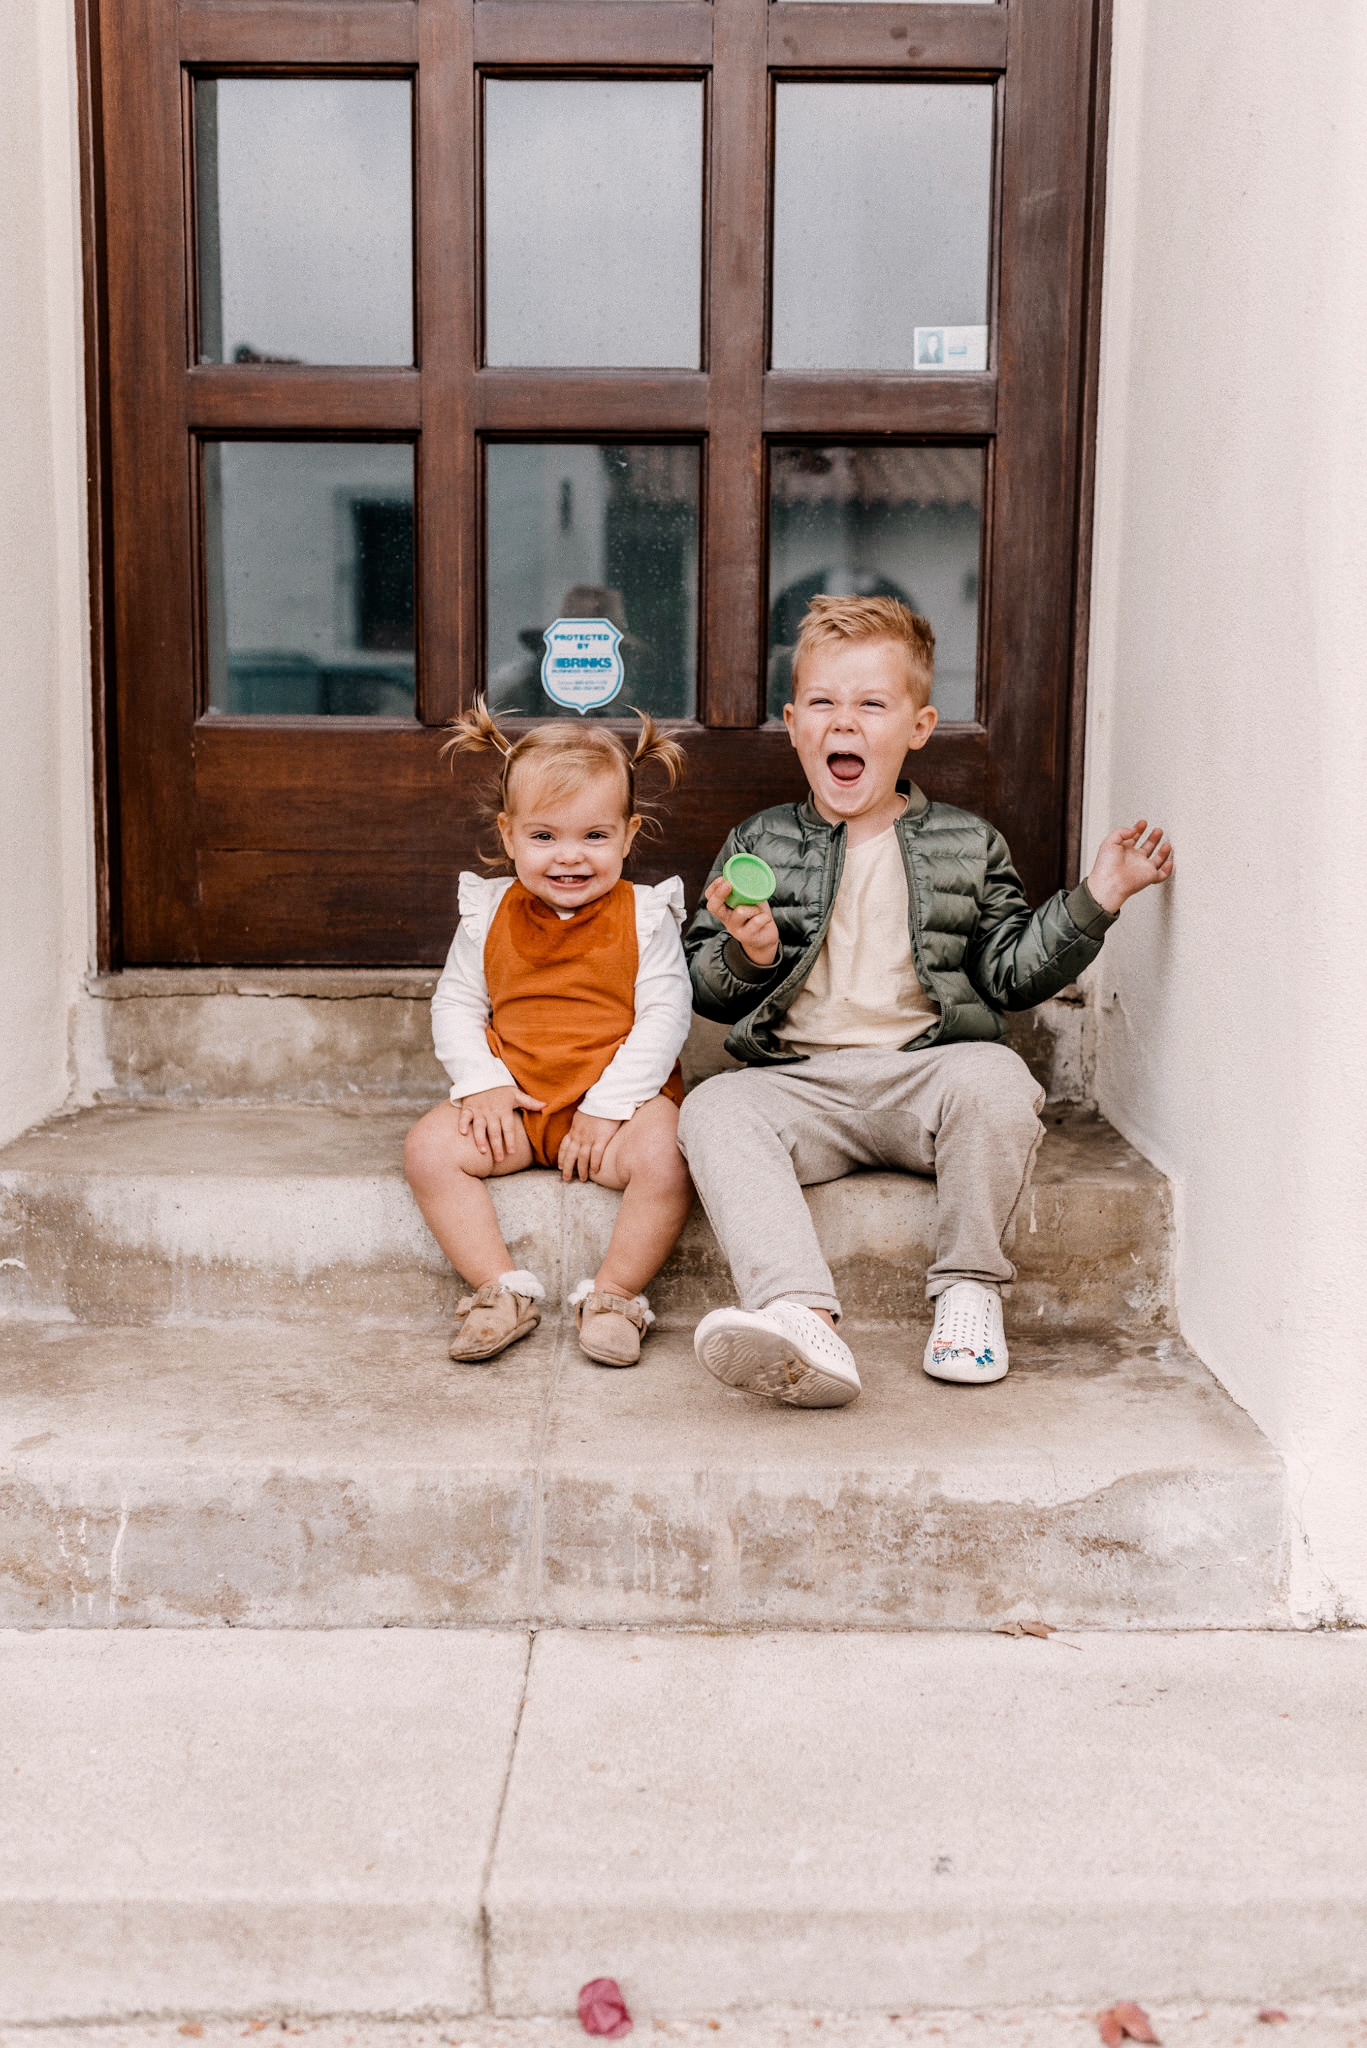 Affordable kids clothing |Kids Winter Clothes by popular San Diego motherhood blog, Navy Grace: image of young boy and girl sitting together on some cement steps.